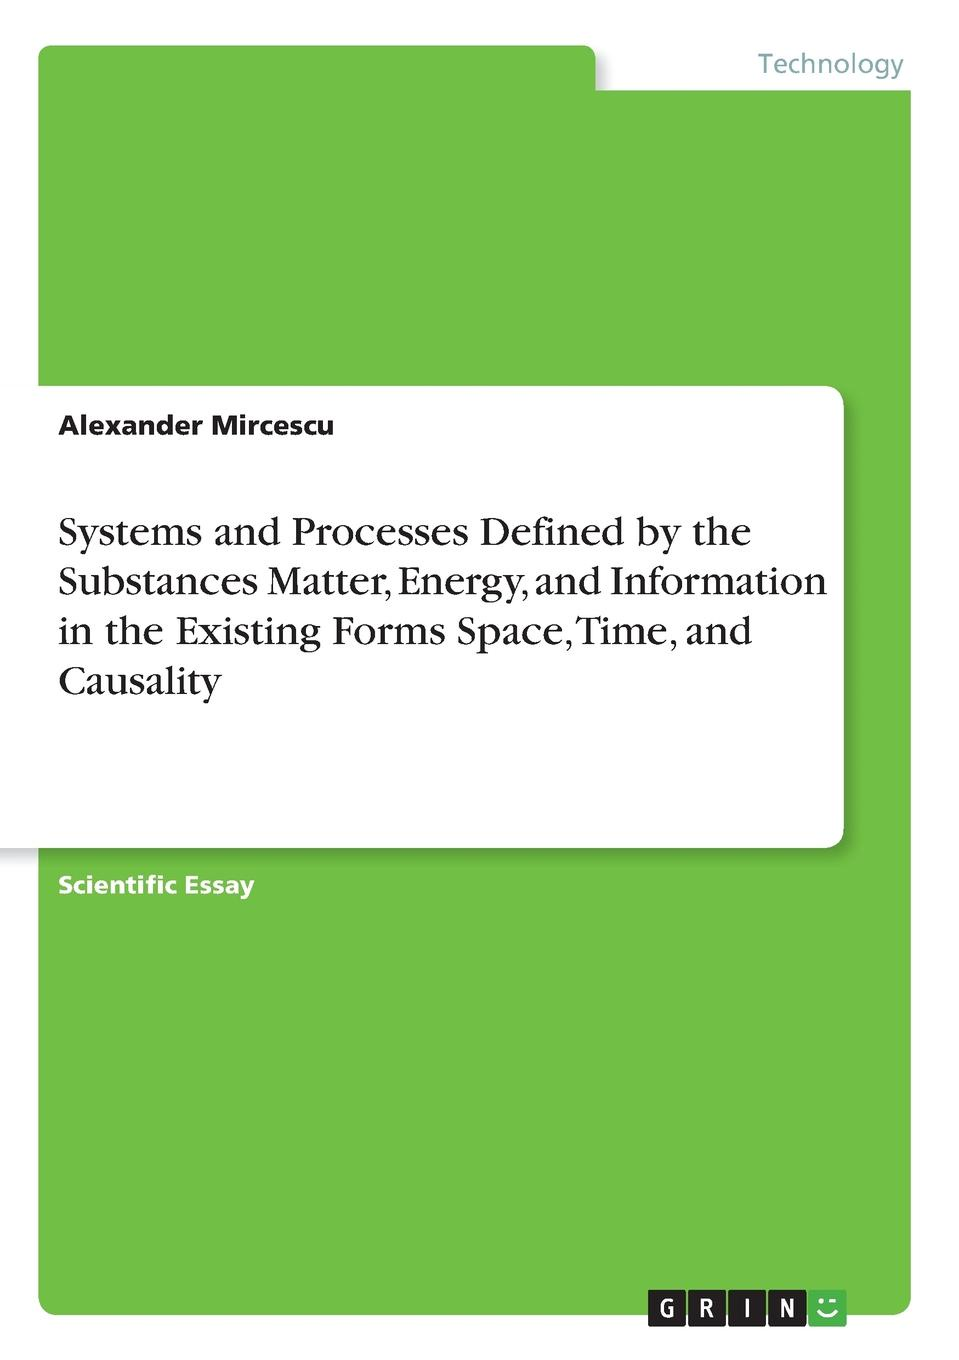 Alexander Mircescu Systems and Processes Defined by the Substances Matter, Energy, and Information in the Existing Forms Space, Time, and Causality detlef stolten hydrogen science and engineering materials processes systems and technology 2 volume set